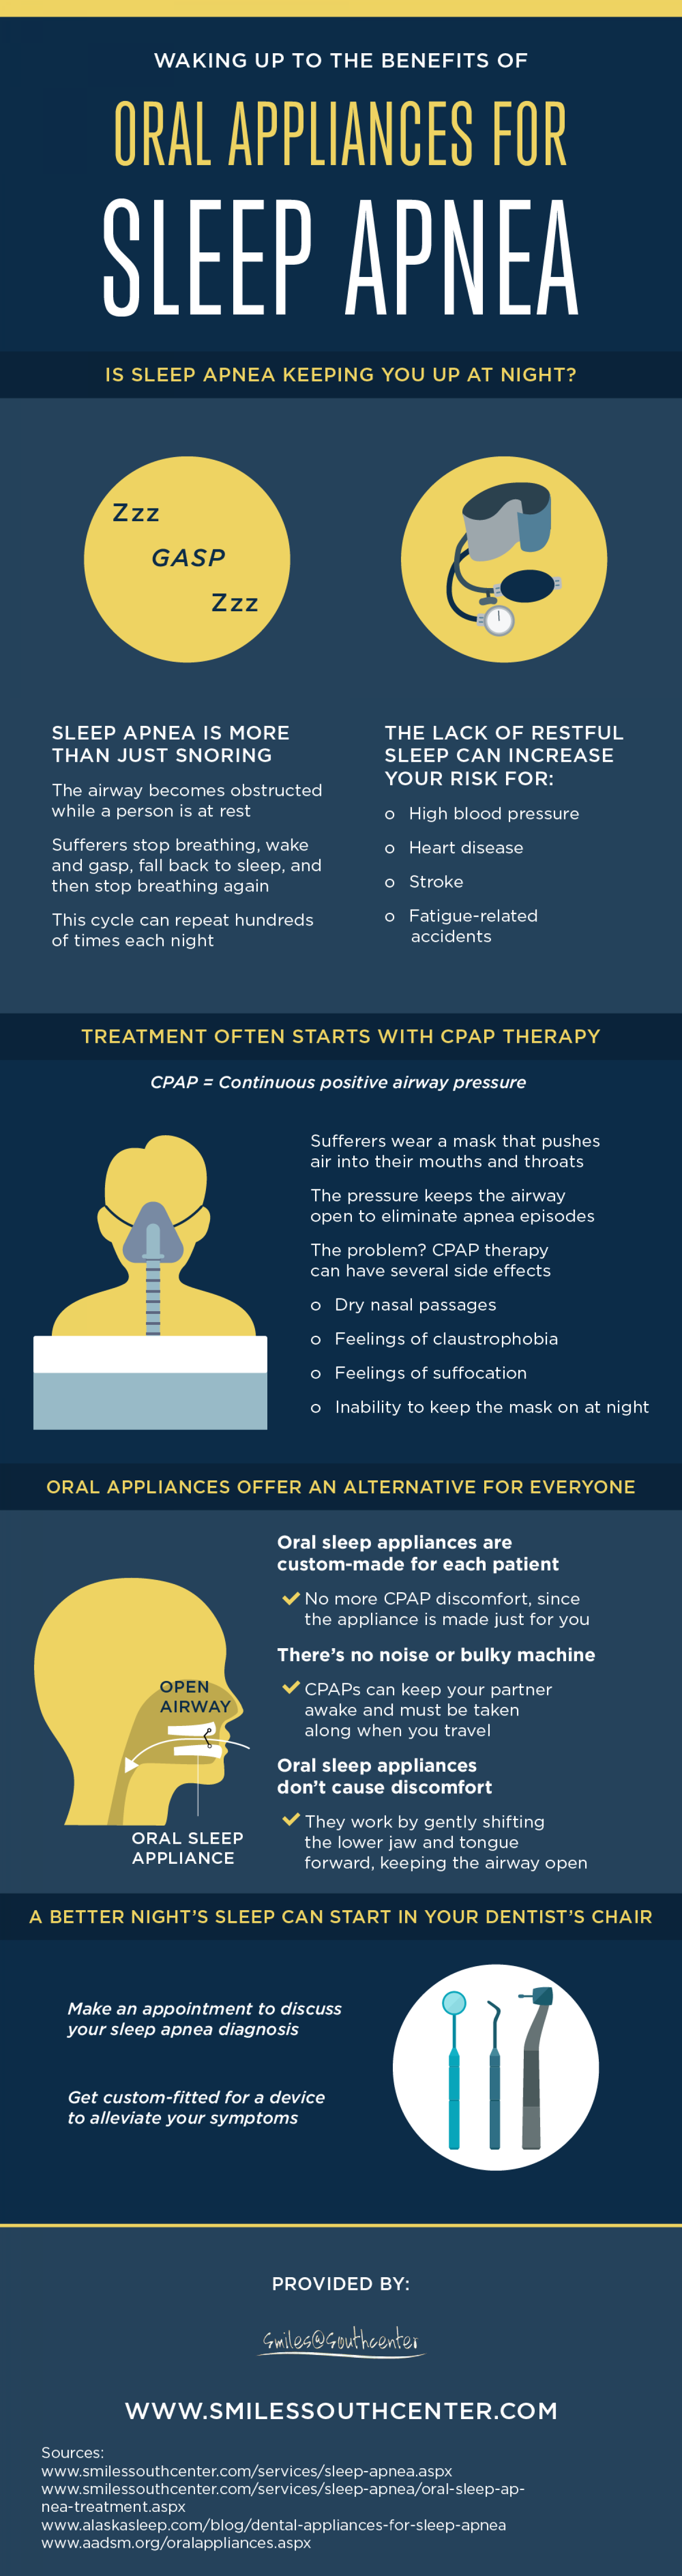 Waking Up to the Benefits of Oral Appliances for Sleep Apnea Infographic